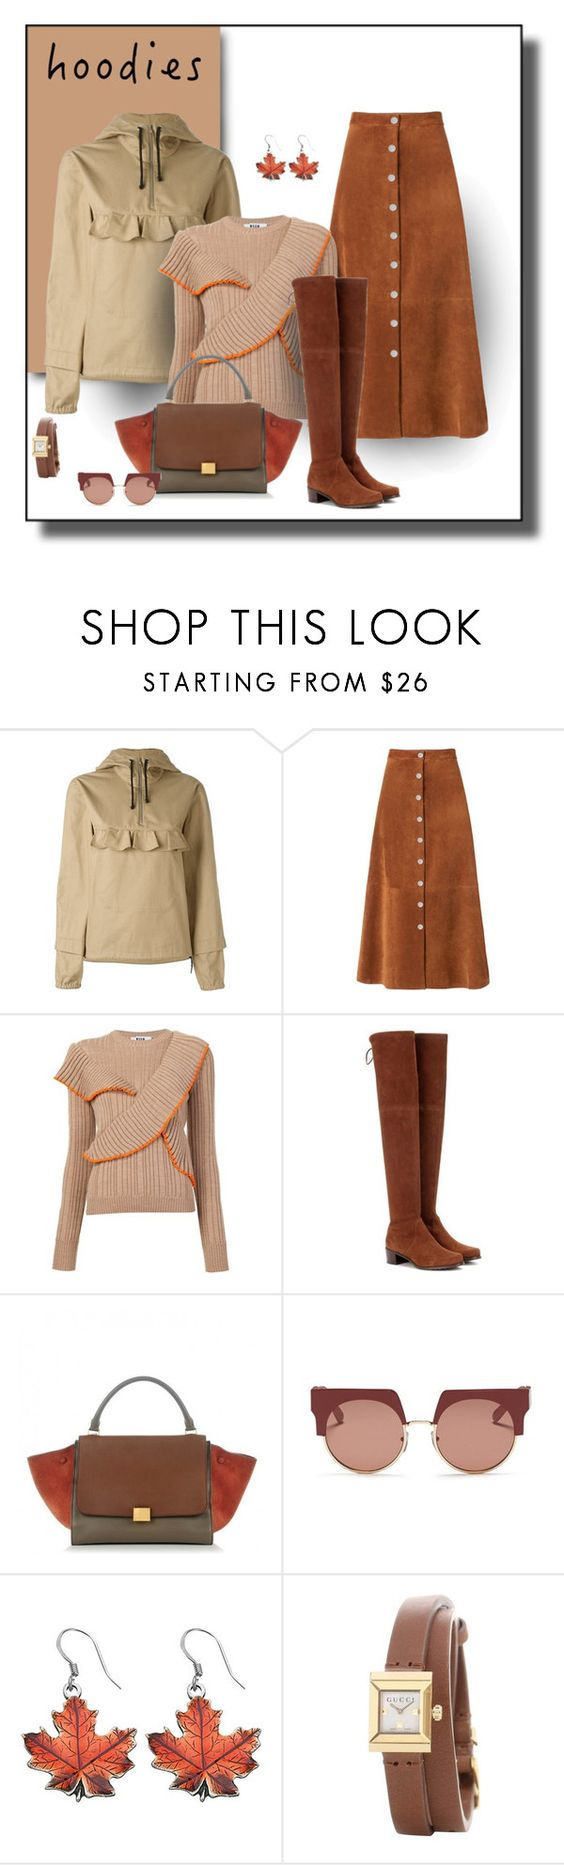 """""""Business Day Hoodie"""" by michelletheaflack ❤ liked on Polyvore featuring Peter Jensen, Diane Von Furstenberg, MSGM, Stuart Weitzman, Marni, Gucci and hoodie"""